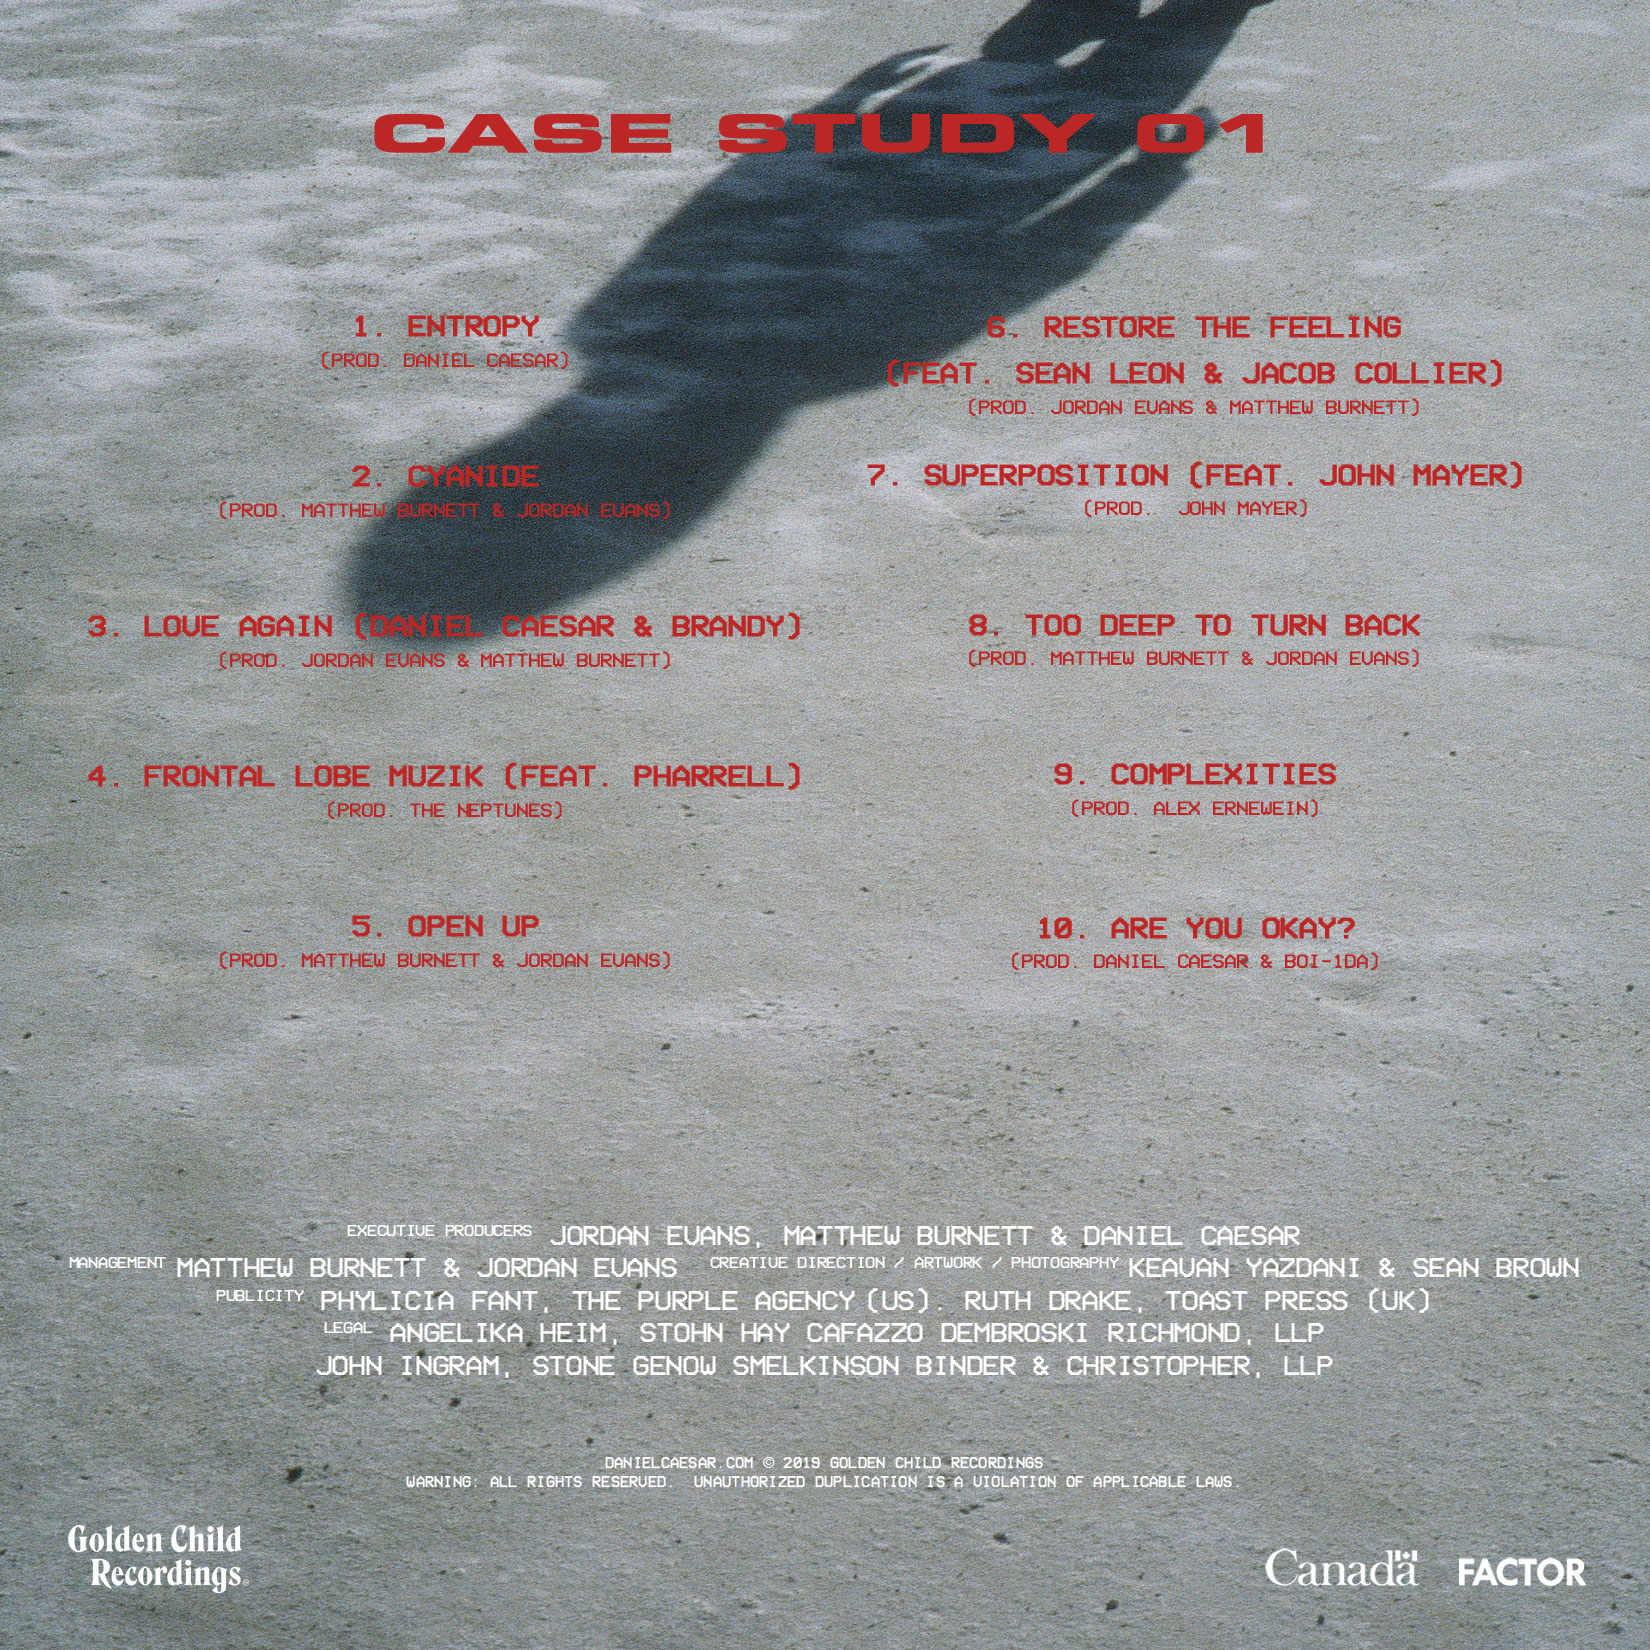 Case-Study-01-back-cover-final-DSP.JPG